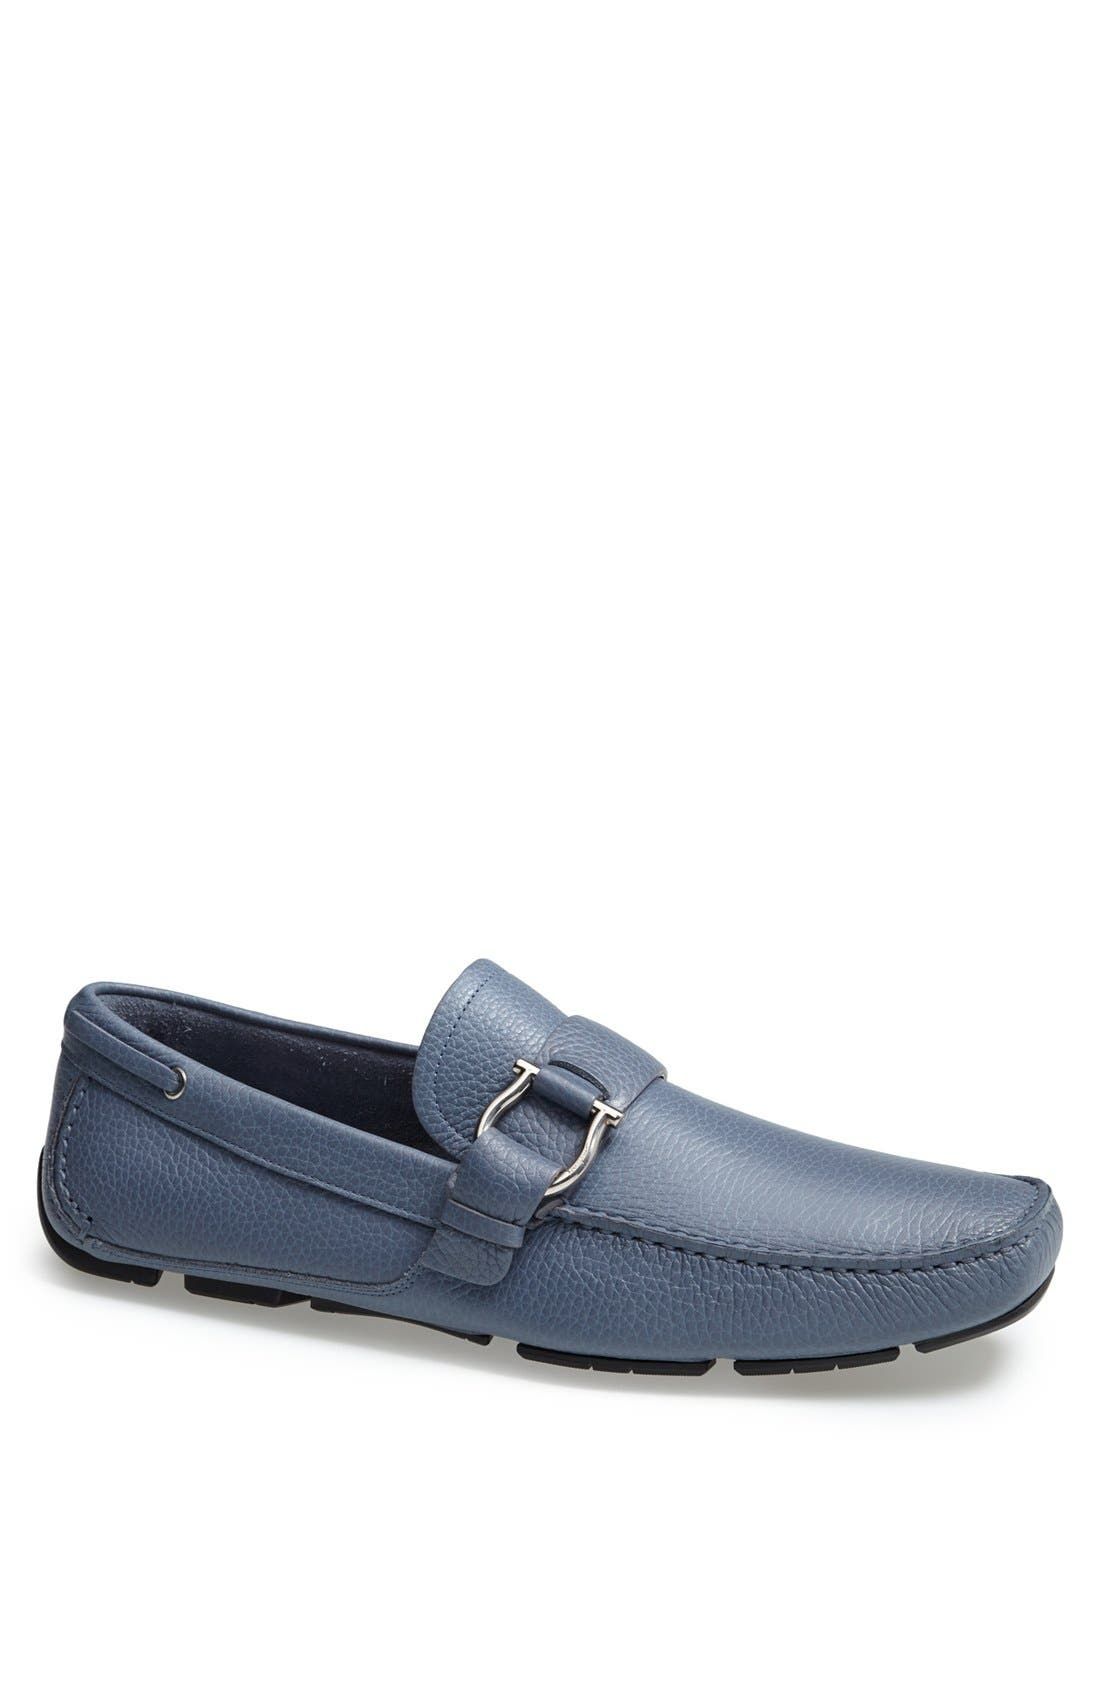 Alternate Image 1 Selected - Salvatore Ferragamo 'Cabo 2' Driving Shoe